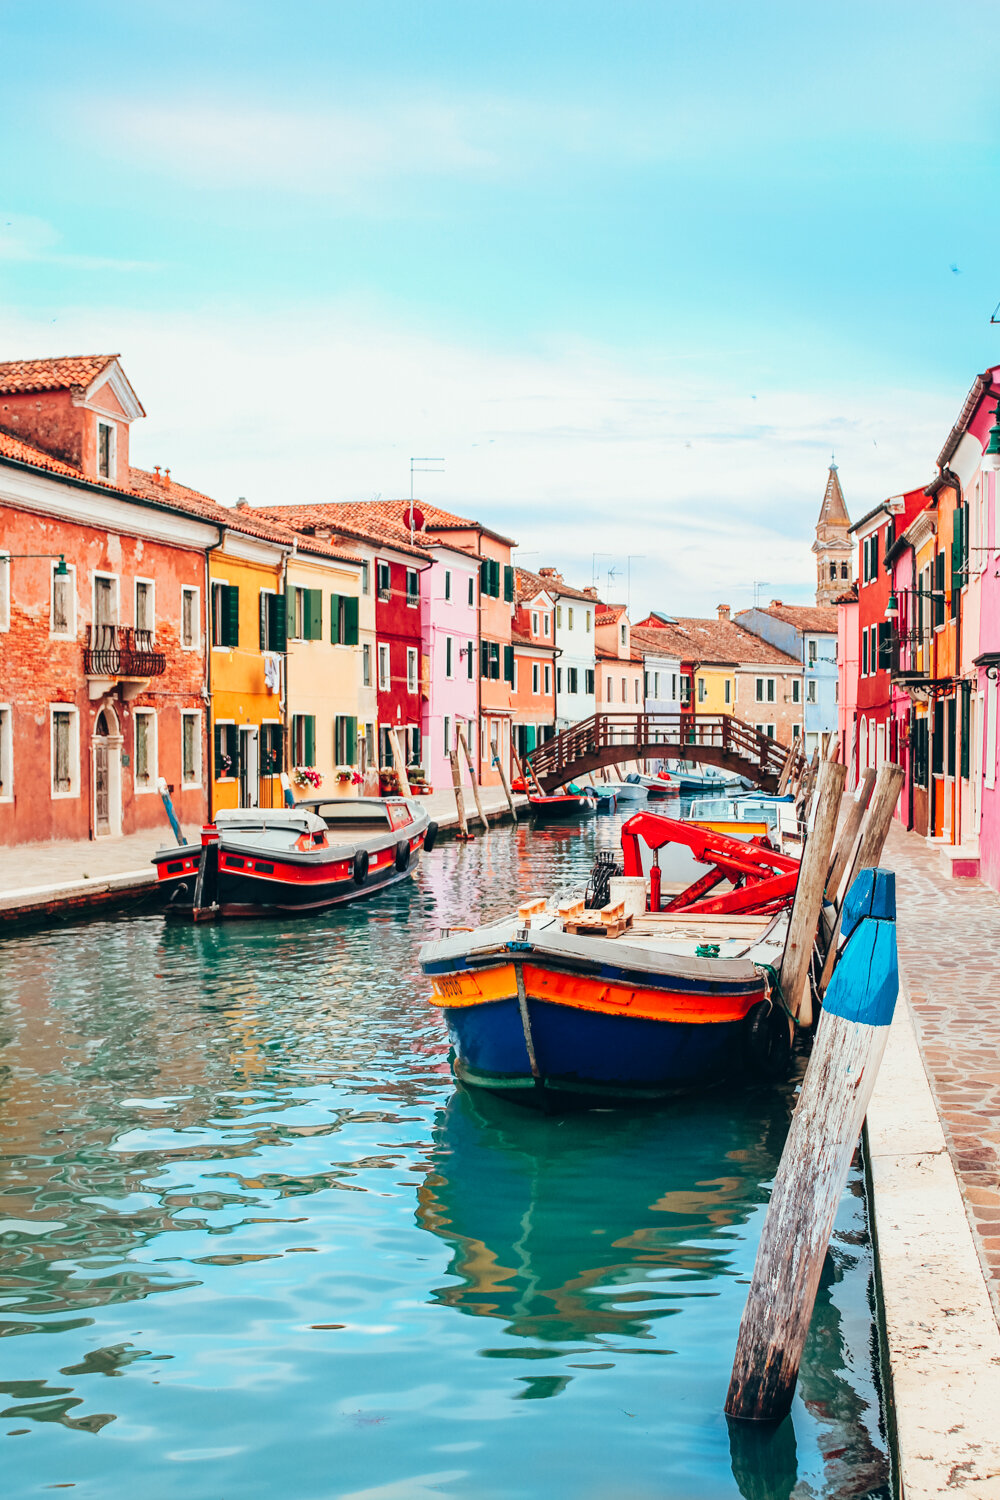 The colourful buildings in Venice are just amazing. When the sun is shining everything looks so bright and you can feel like you are in a fairytale.